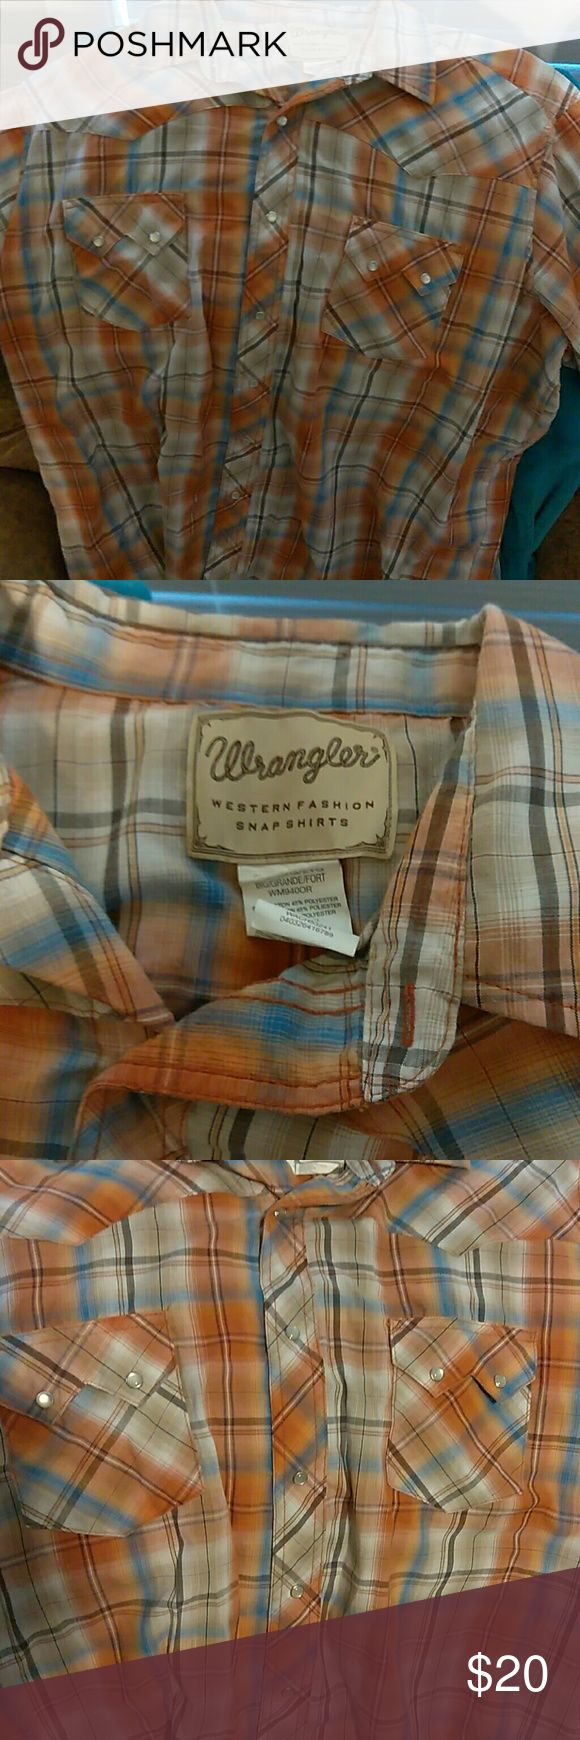 Wrangler Pearl Snap Short Sleeved Western shirt Super nice! Like new. Burnt orange and sky blue. (Bundle and save! Many are listed) Wrangler Shirts Casual Button Down Shirts